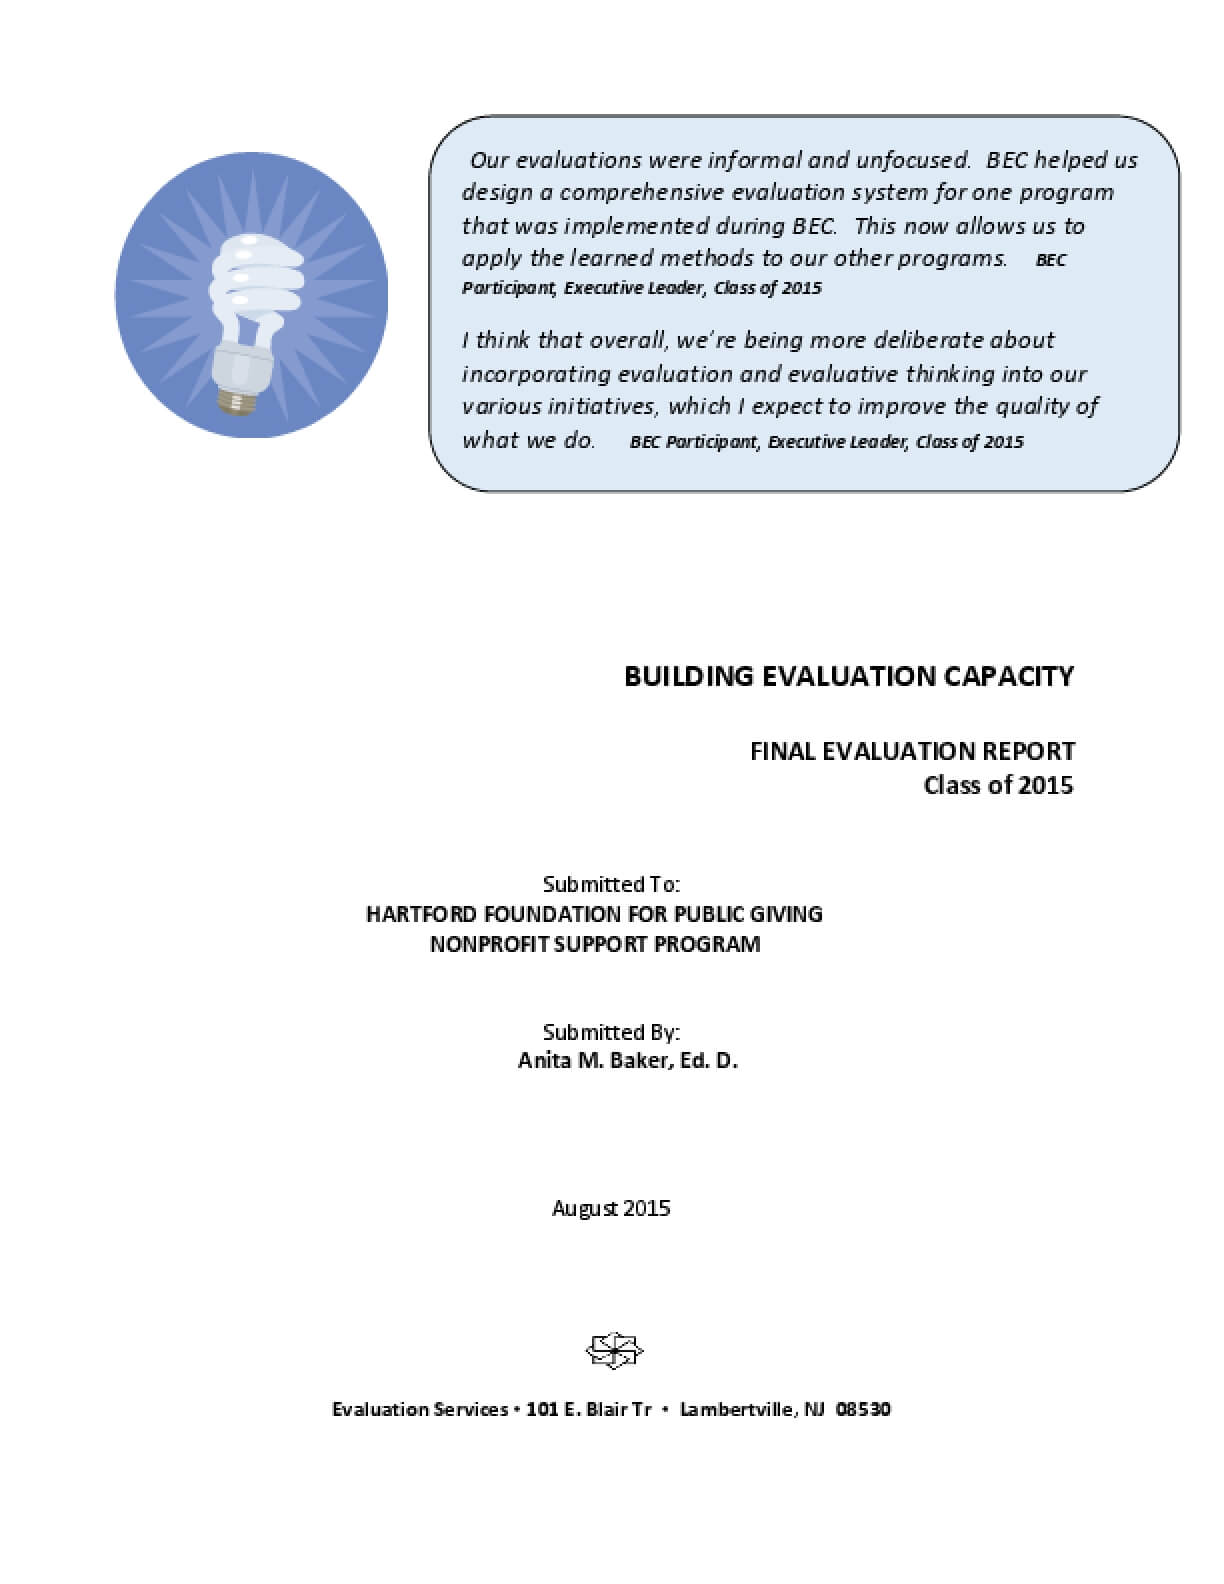 Building Evaluation Capacity: Final Evaluation Report Executive Summary